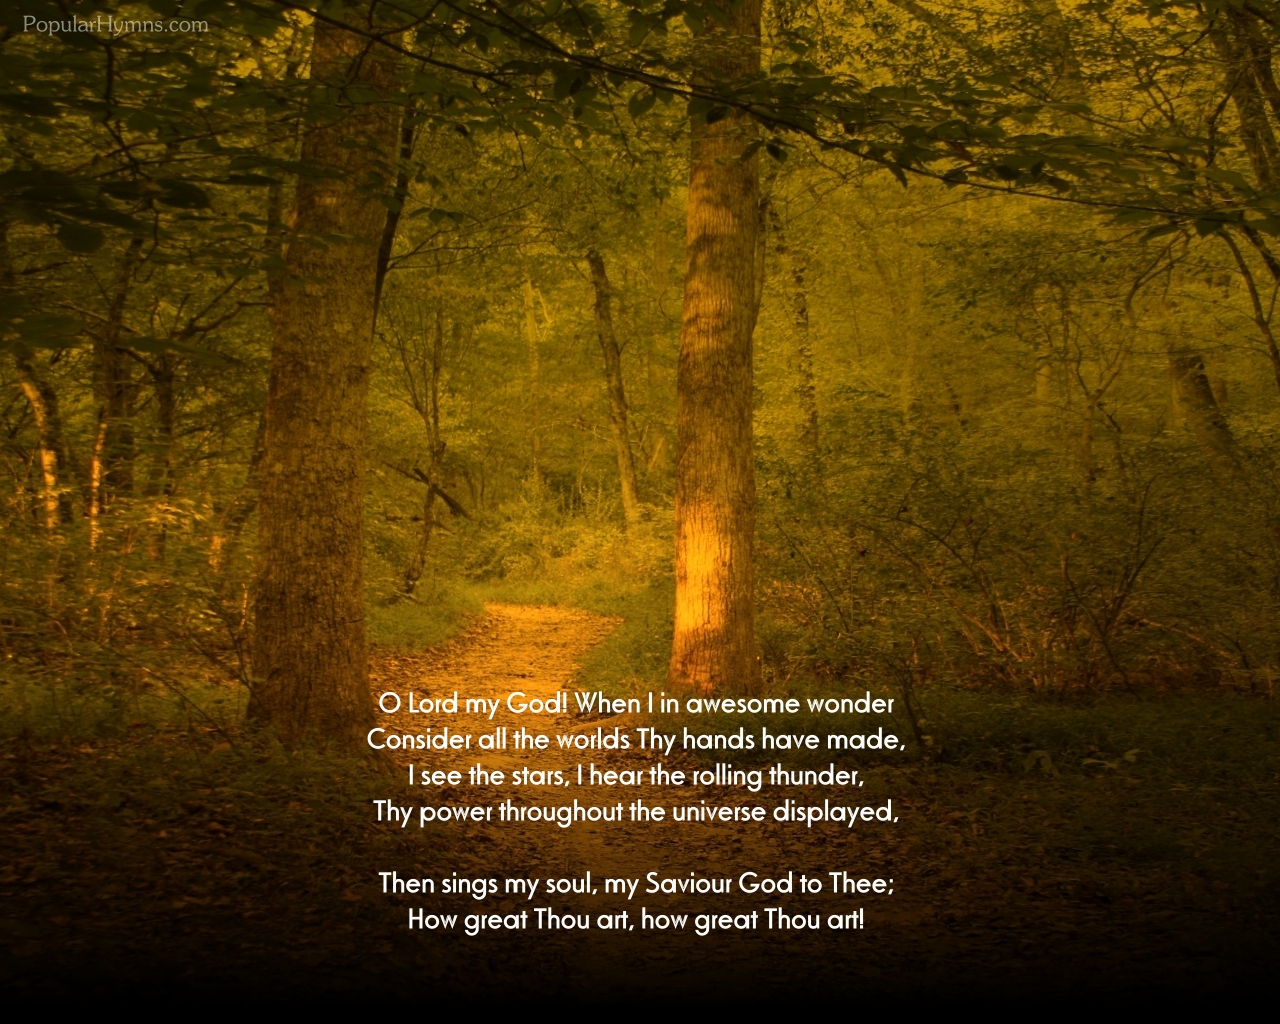 how_great_thou_art6 How Great Thou Art Chris Rice Lyrics @bookmarkpages.info